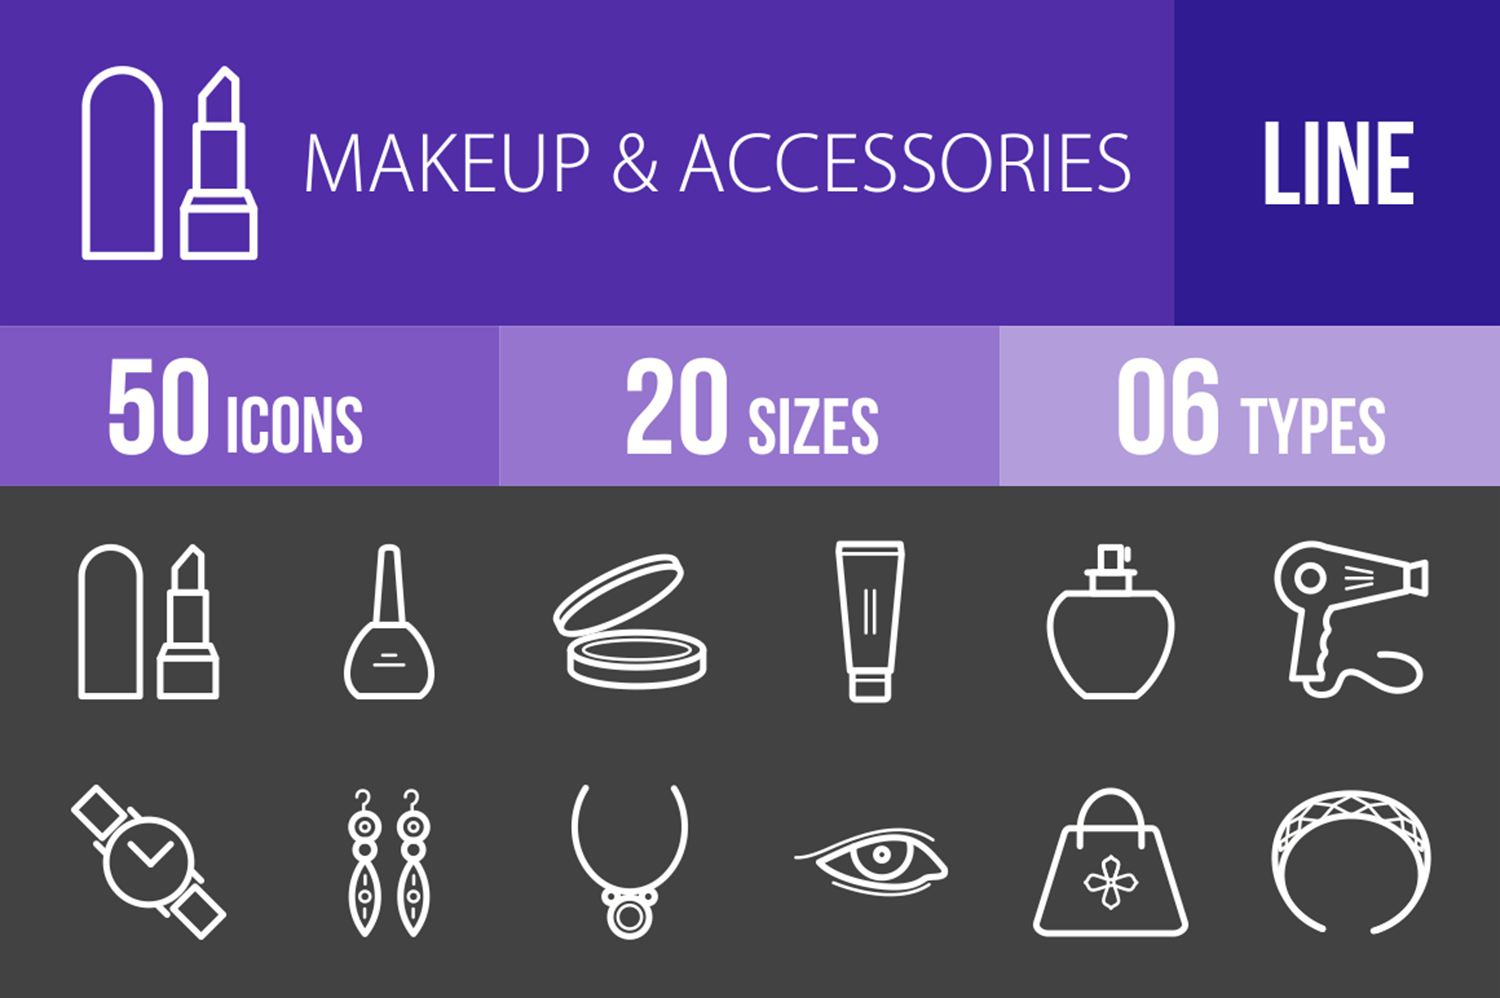 50 Makeup & Accessories Line Inverted Icons example image 1